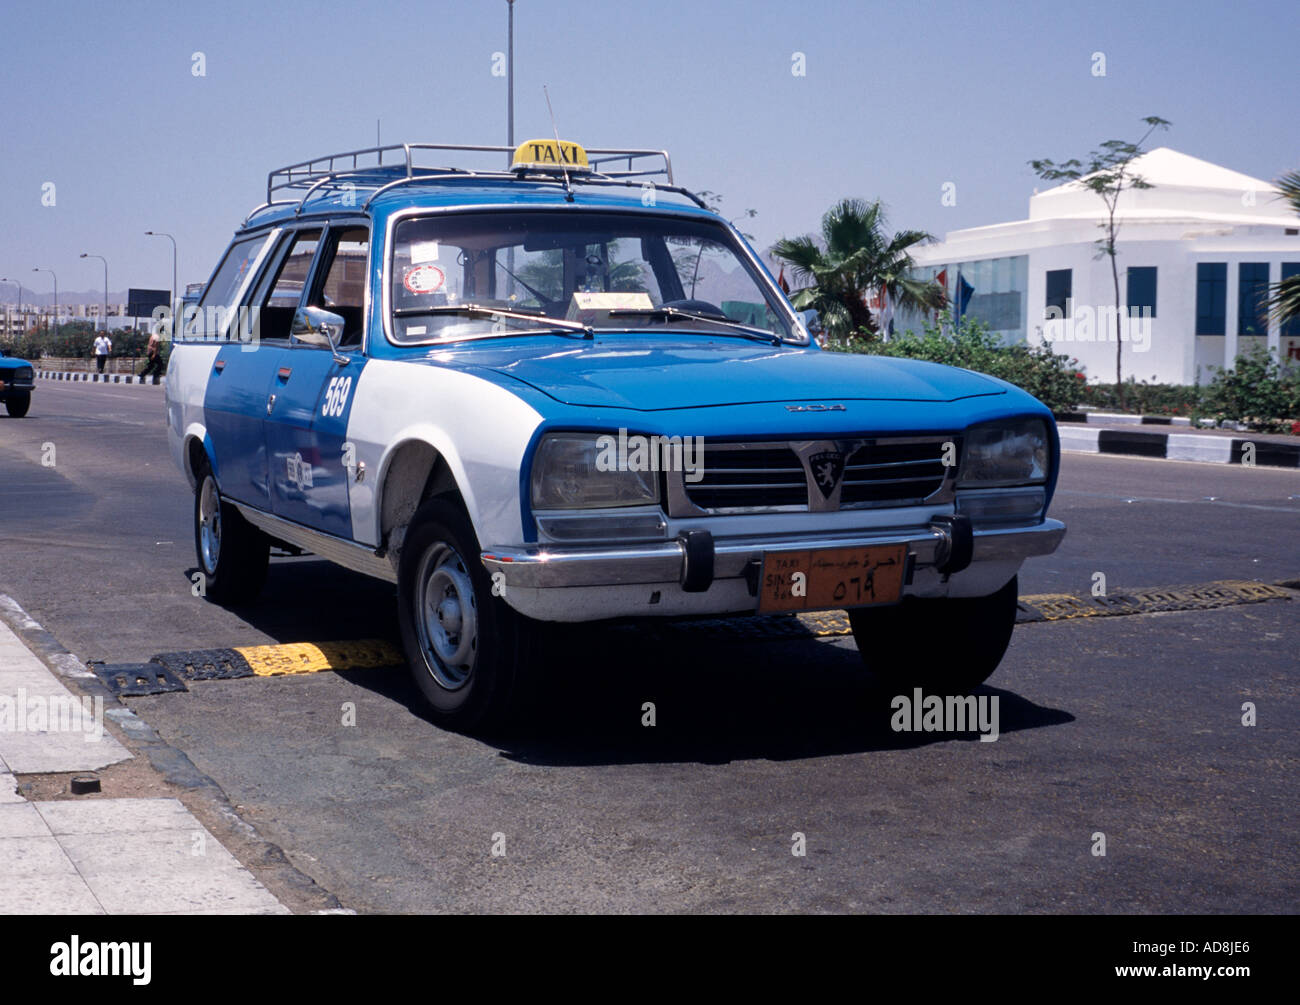 Peugeot 504 Stock Photos Peugeot 504 Stock Images Alamy